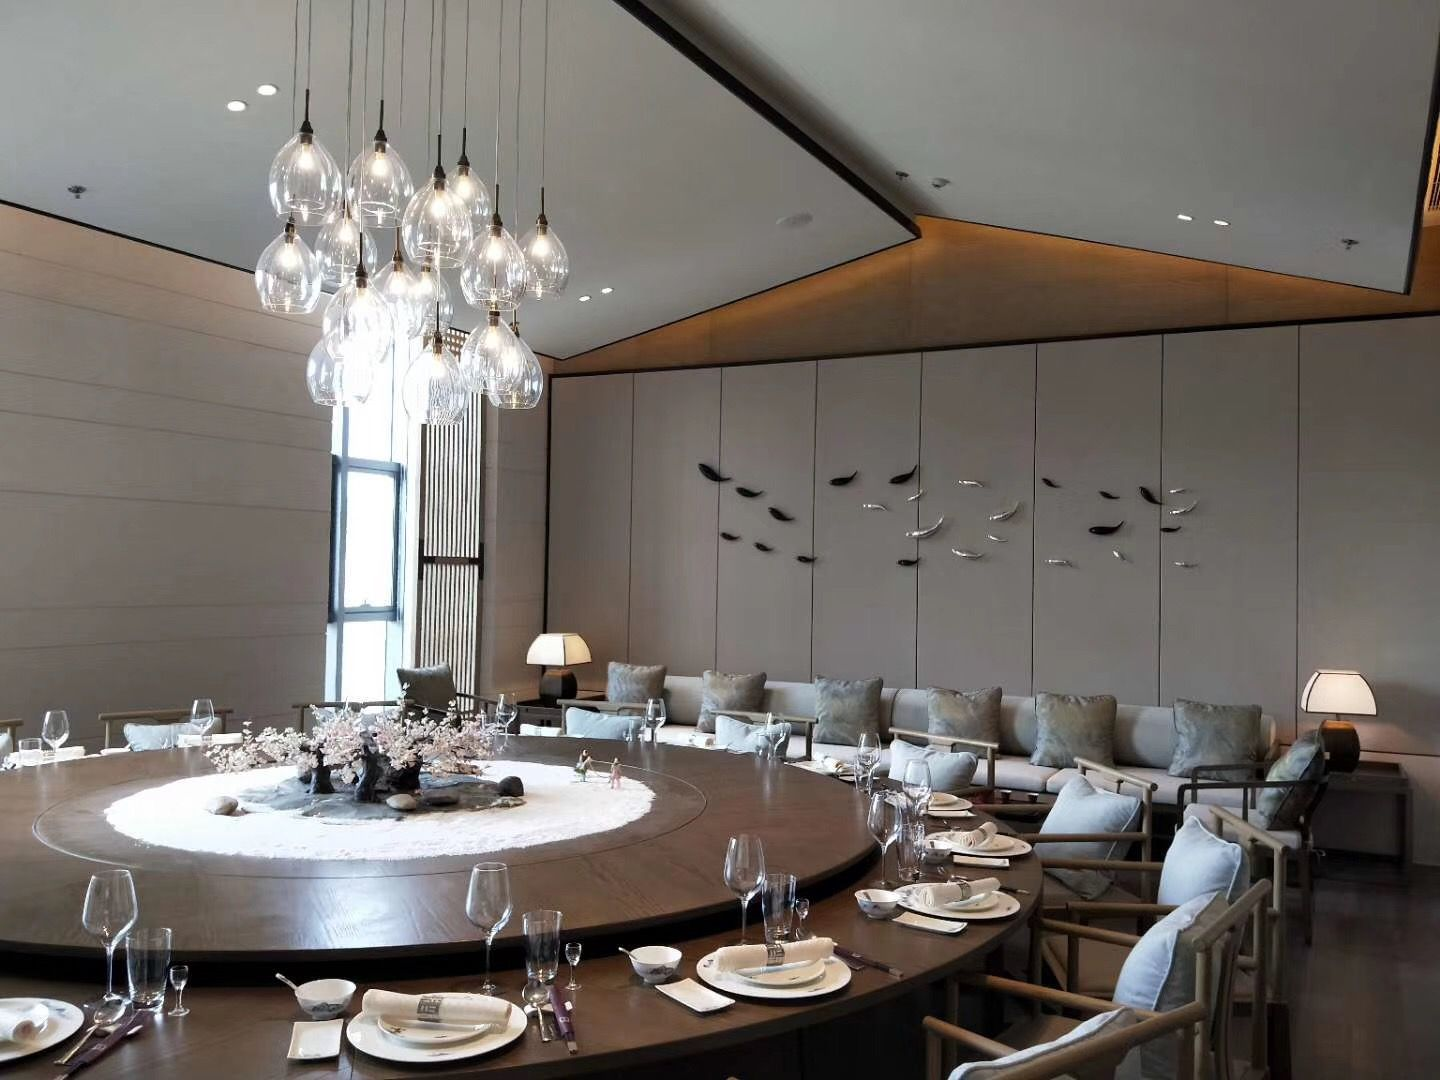 Pin By Cxl On 室内 Dining Design Luxury Dining Round Dining Table